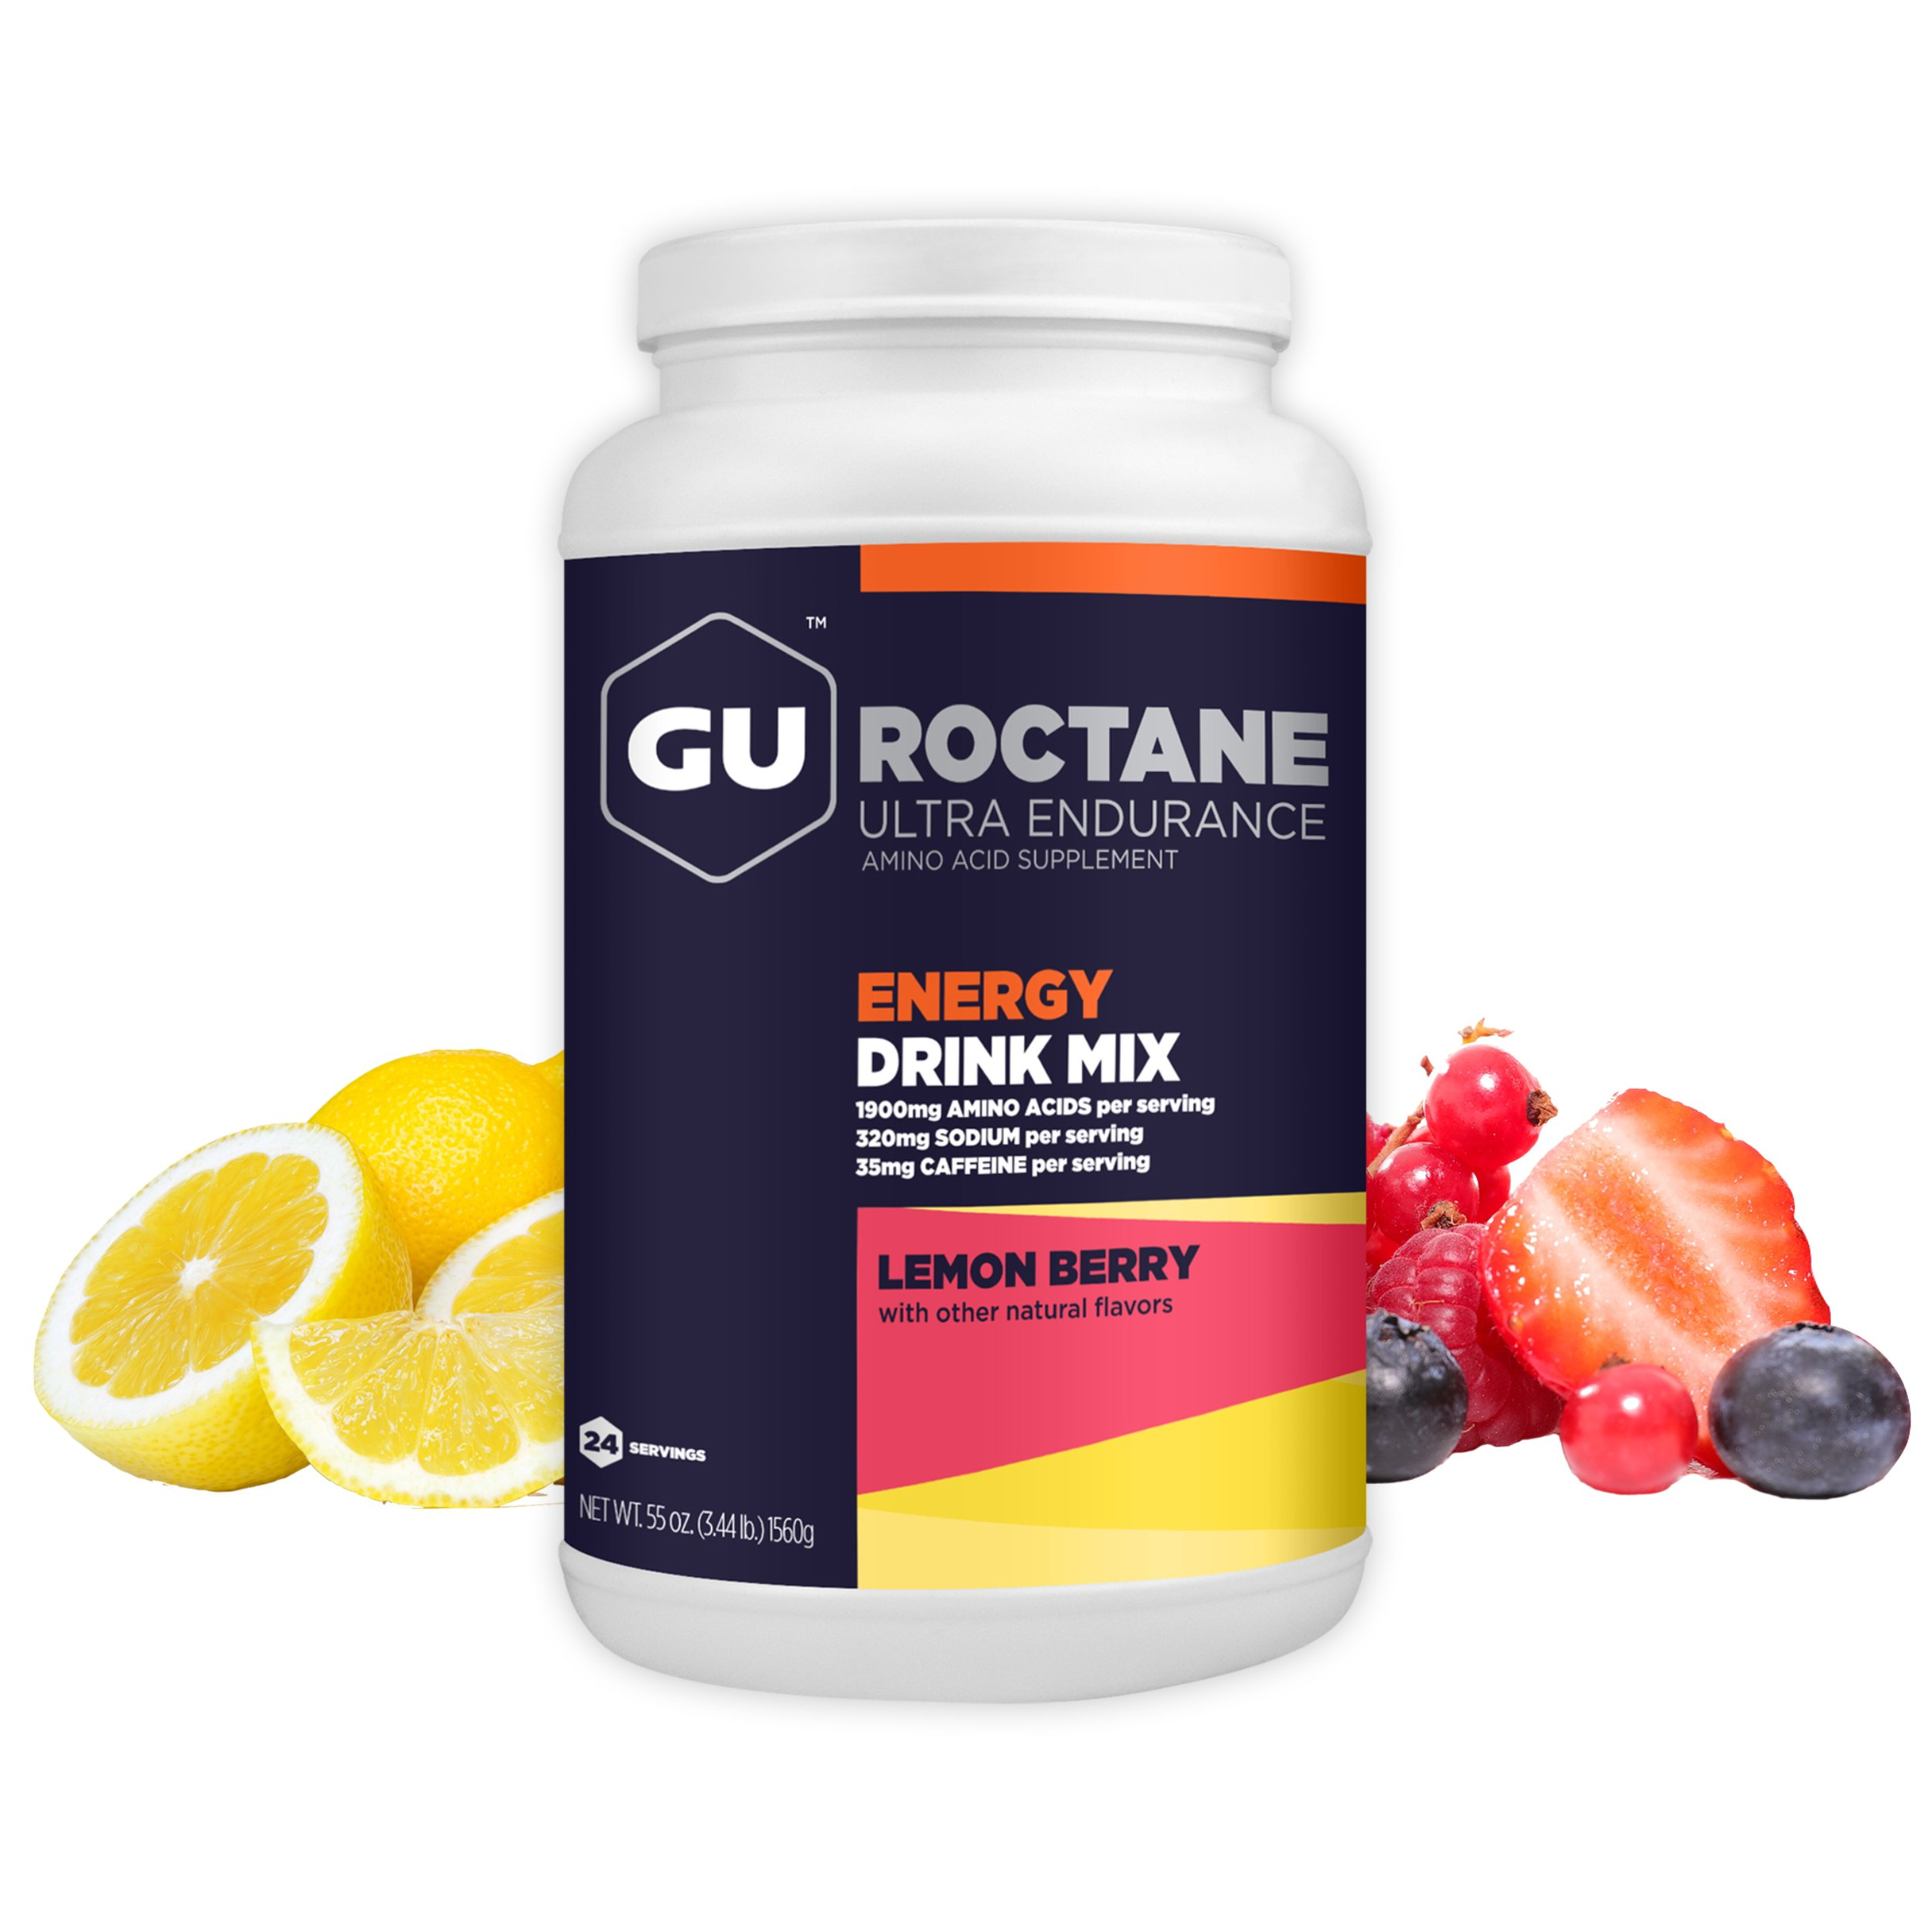 GU Energy Roctane Ultra Endurance Energy Drink Mix, Lemon Berry, 3.44-Pound Jar